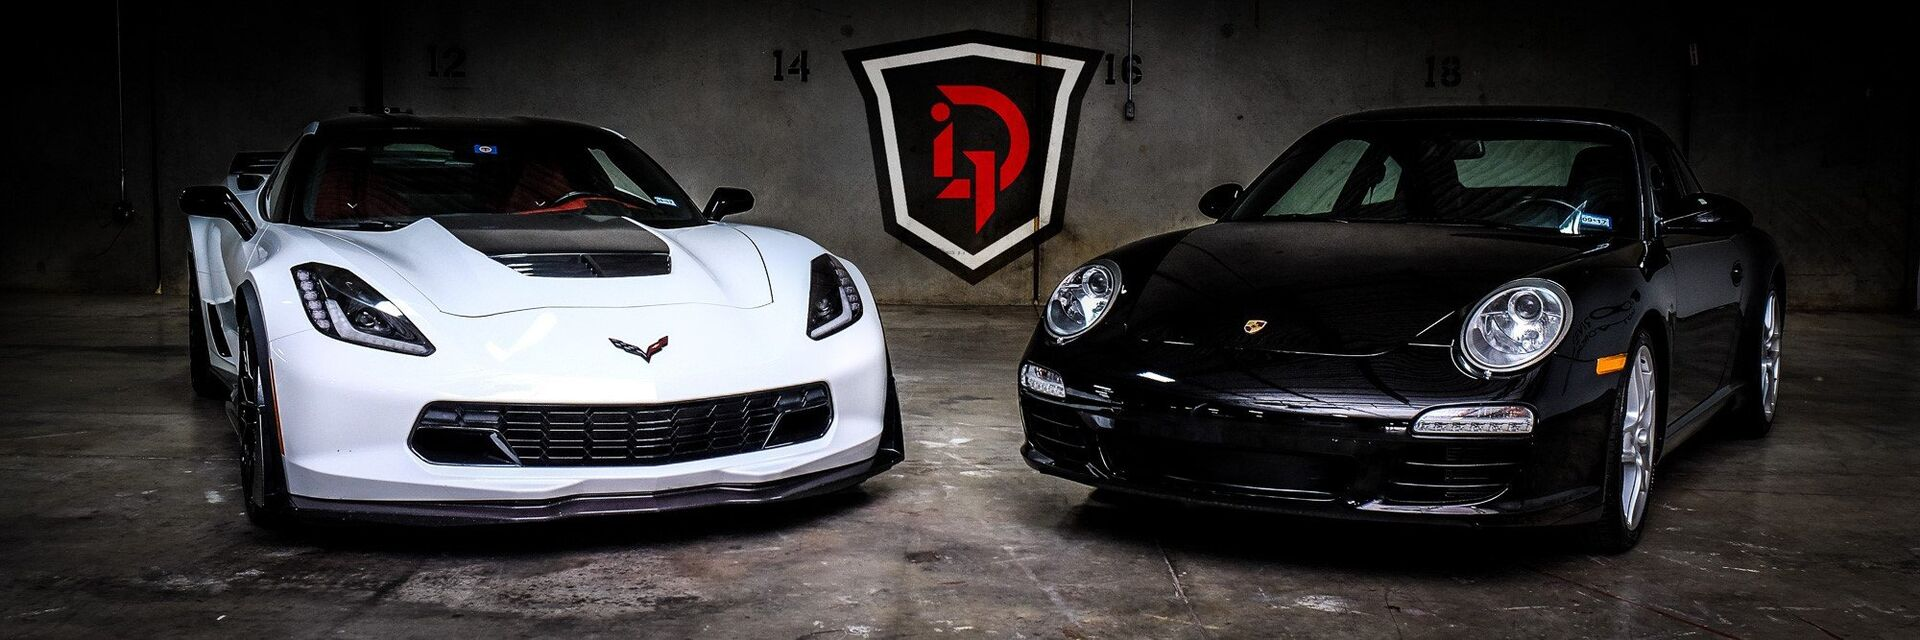 Used Corvette and Used Porsche